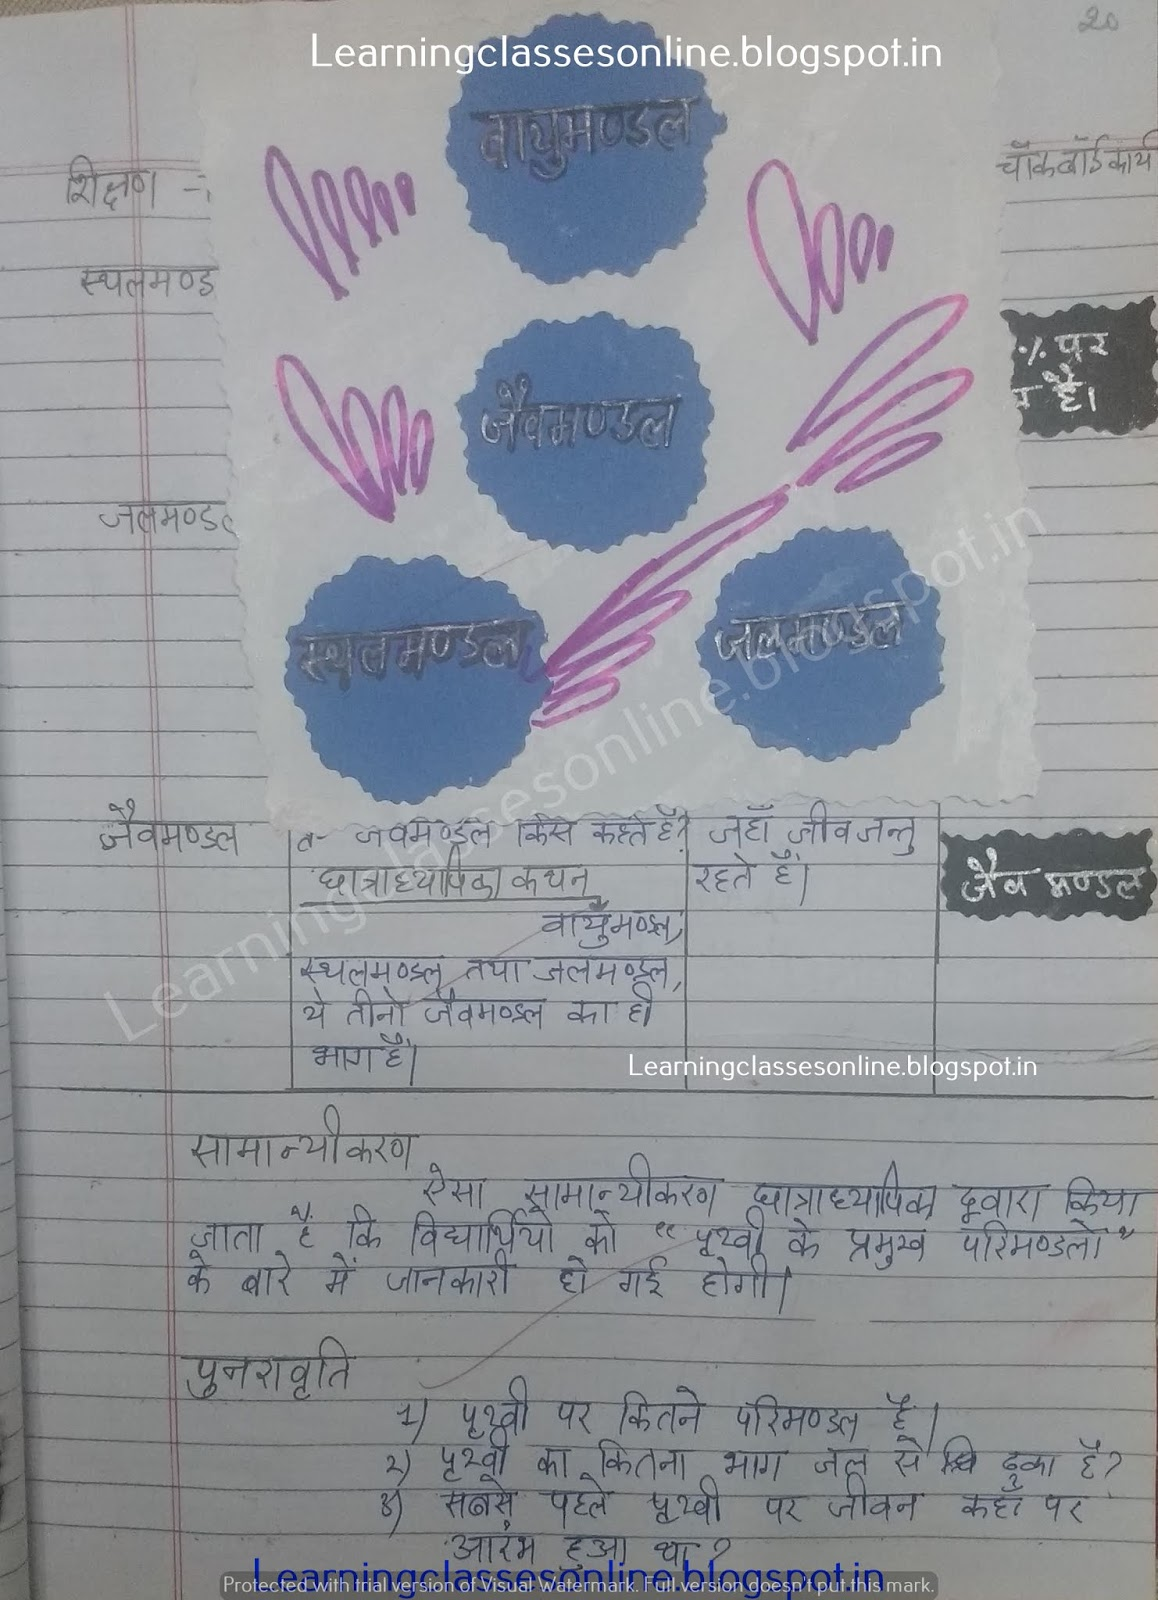 sst lesson plan in hindi, cbse lesson plans for social science teach